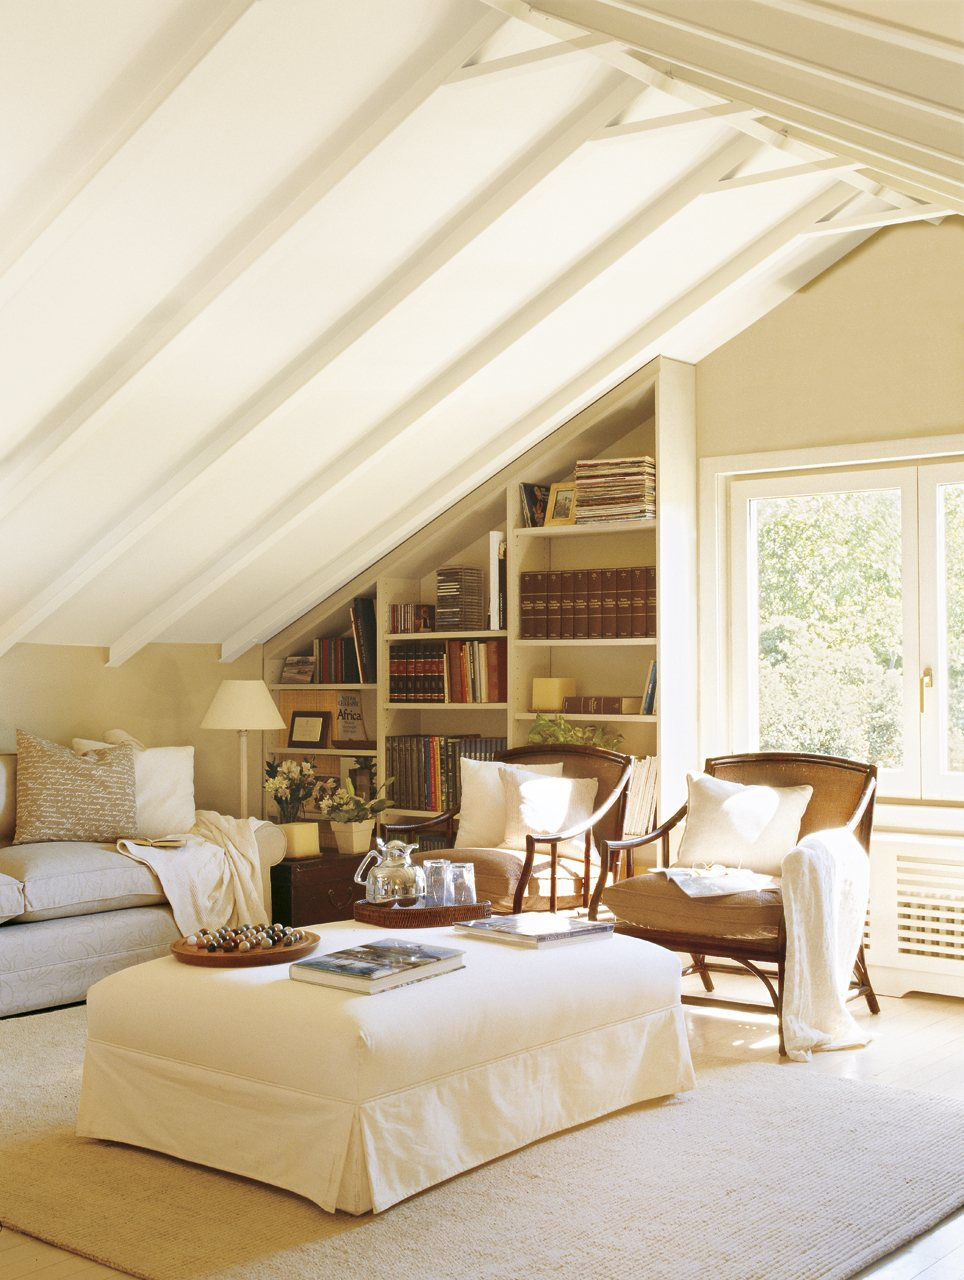 30 attic living room ideas adorable home An attic room